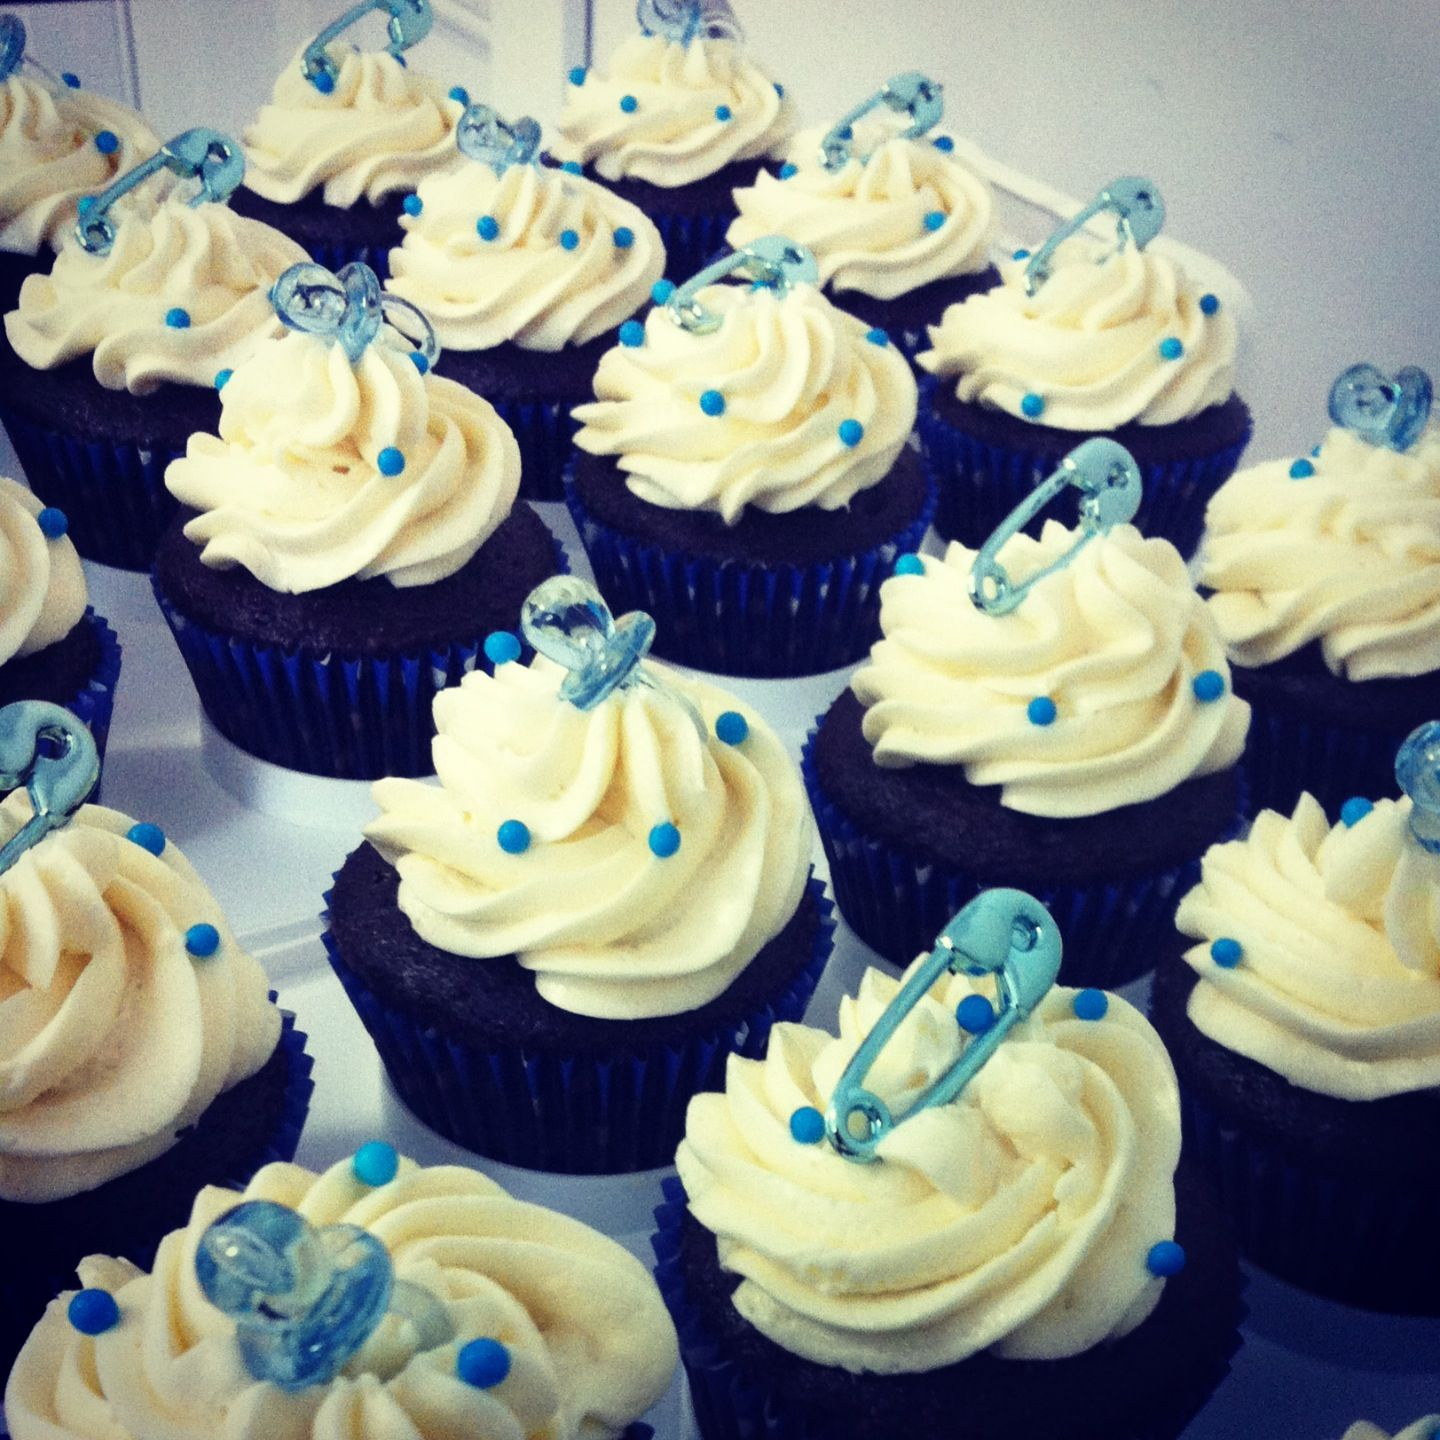 Baby Boy Shower Cupcakes Baby Shower Cupcakes For Boy Cupcakes For Boys Baby Shower Cakes For Boys